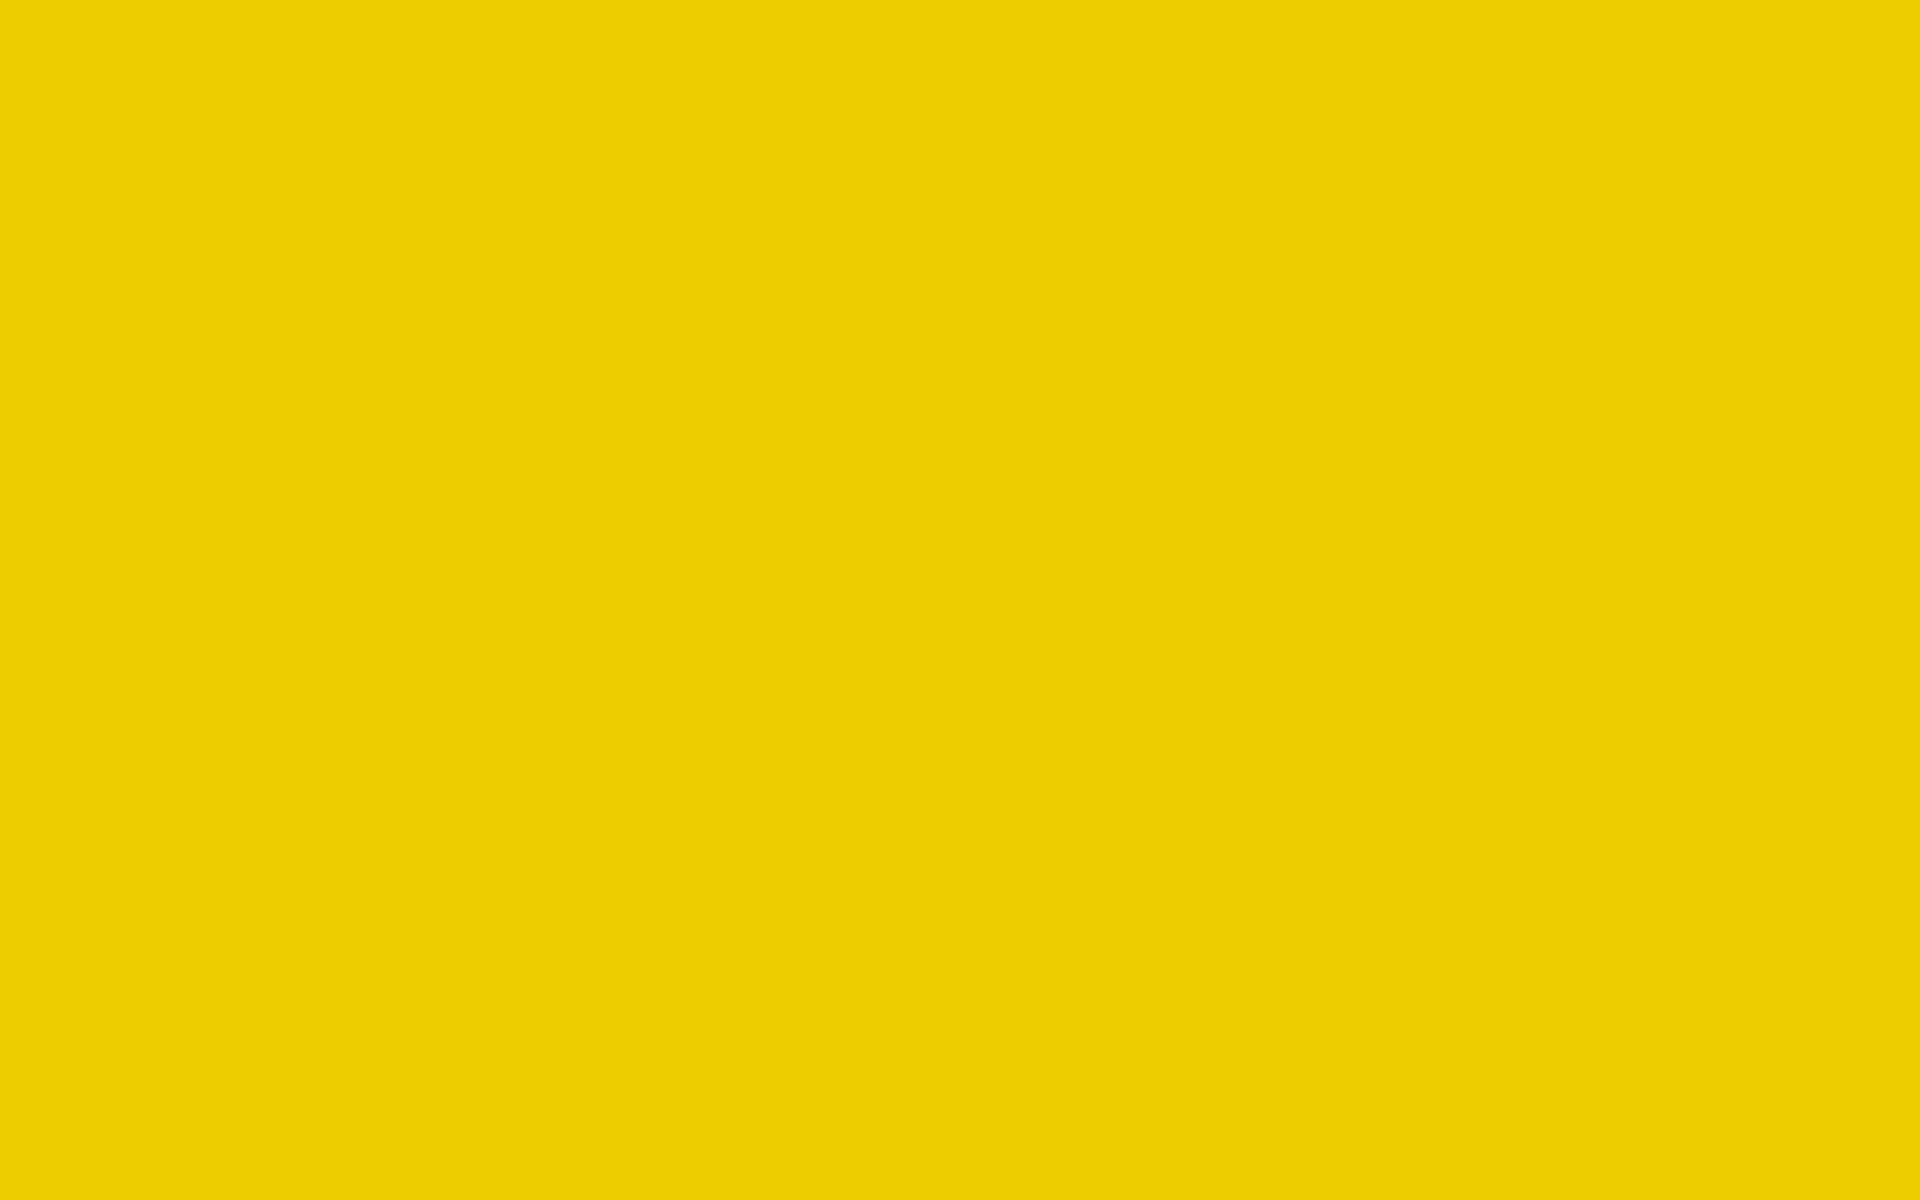 1920x1200 Yellow Munsell Solid Color Background